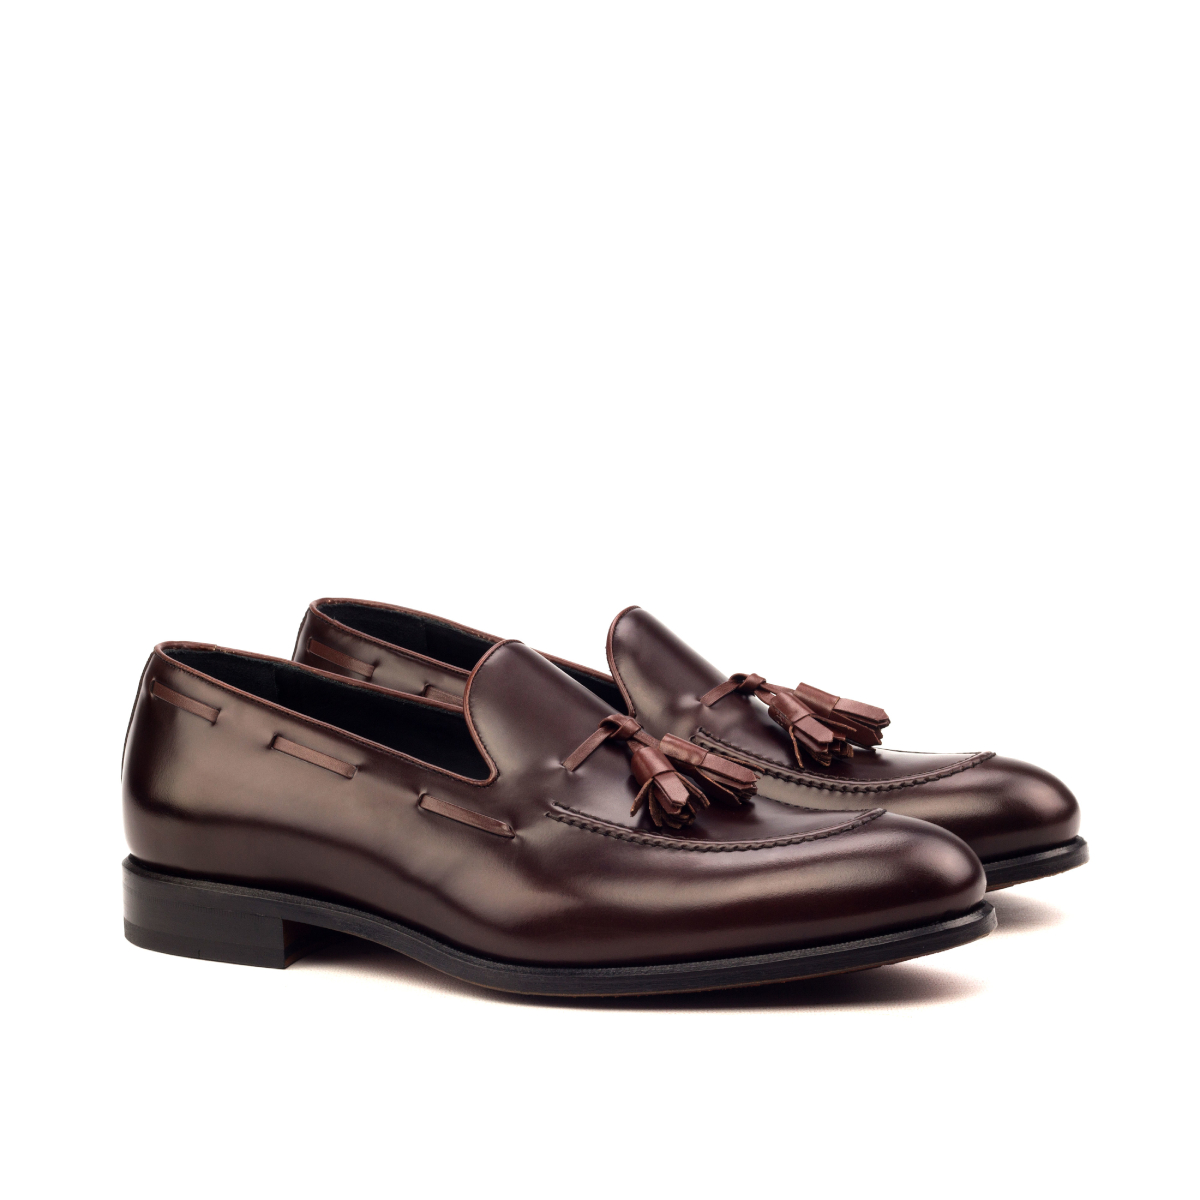 Burgundy box calf tassel loafer